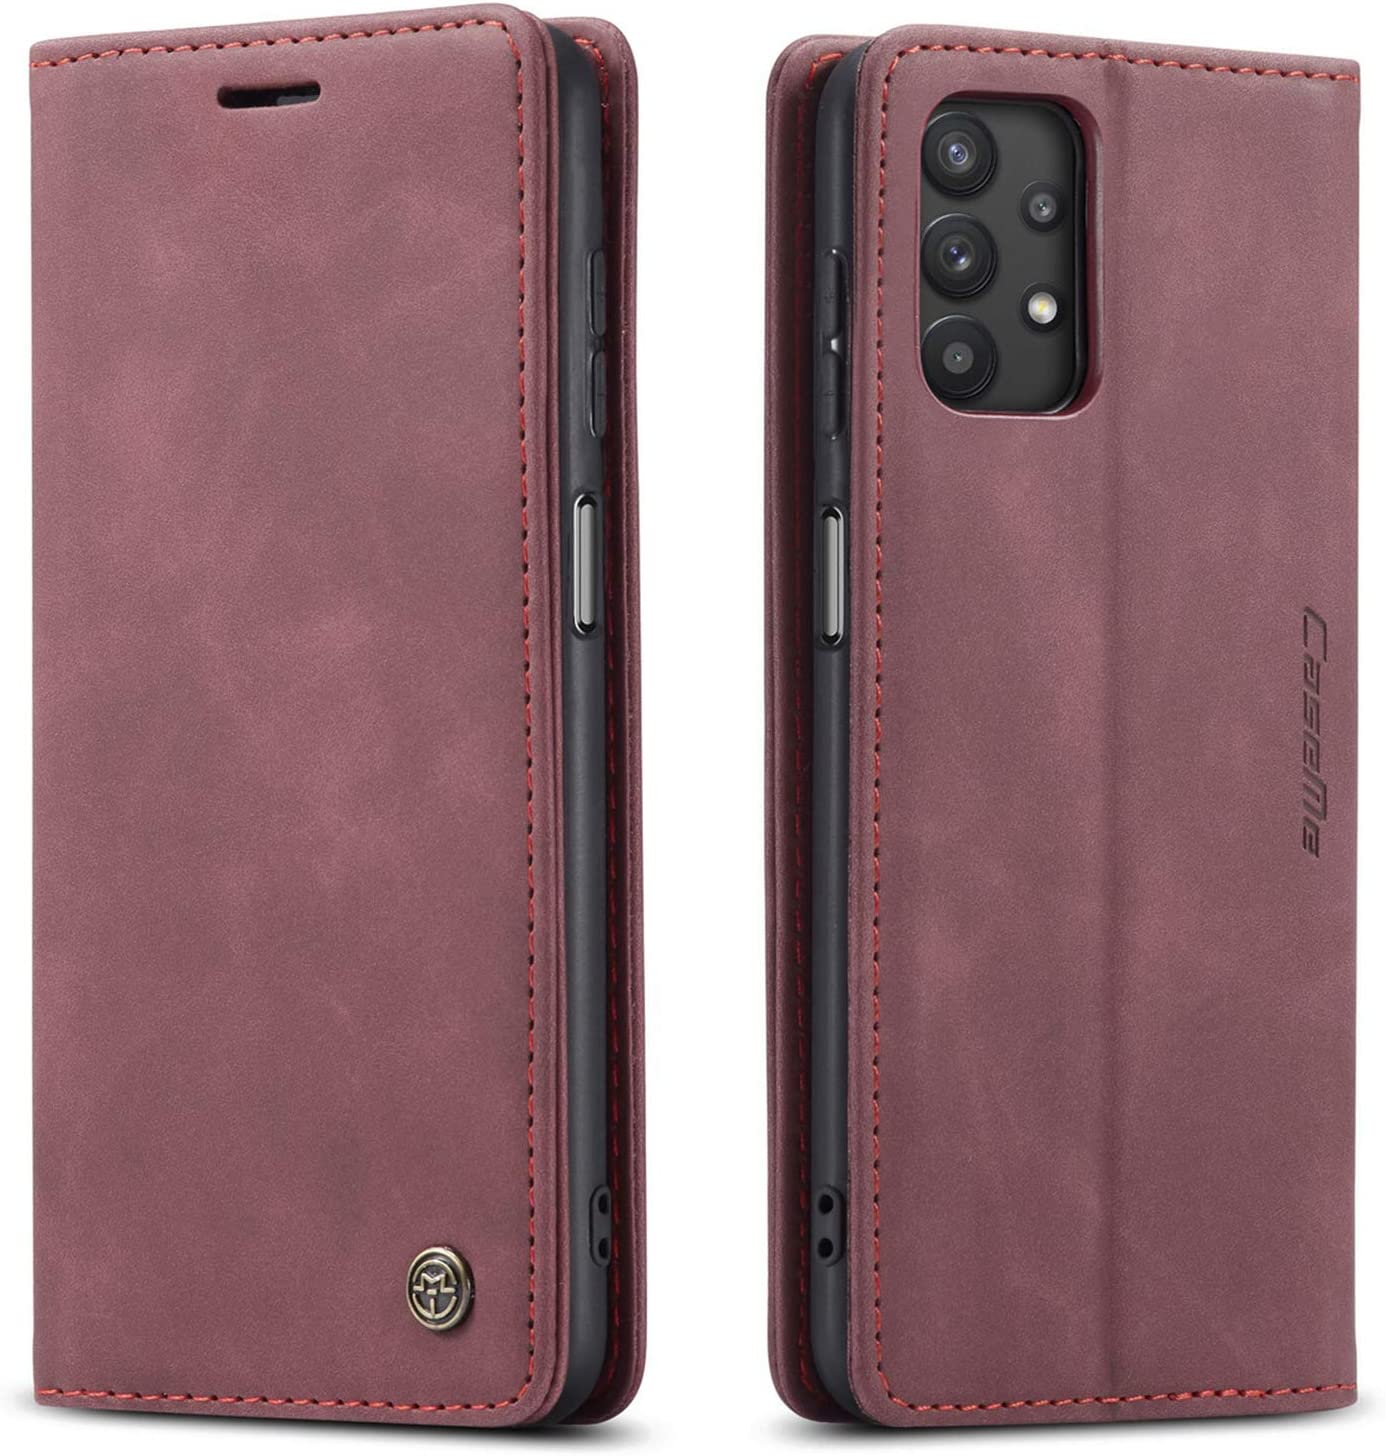 Kowauri Flip Case for Galaxy A32 5G [NOT Compatible with Galaxy A32 4G],Leather Wallet Case Classic Design with Card Slot and Magnetic Closure Flip Fold Case for Samsung Galaxy A32 5G (Wine red)